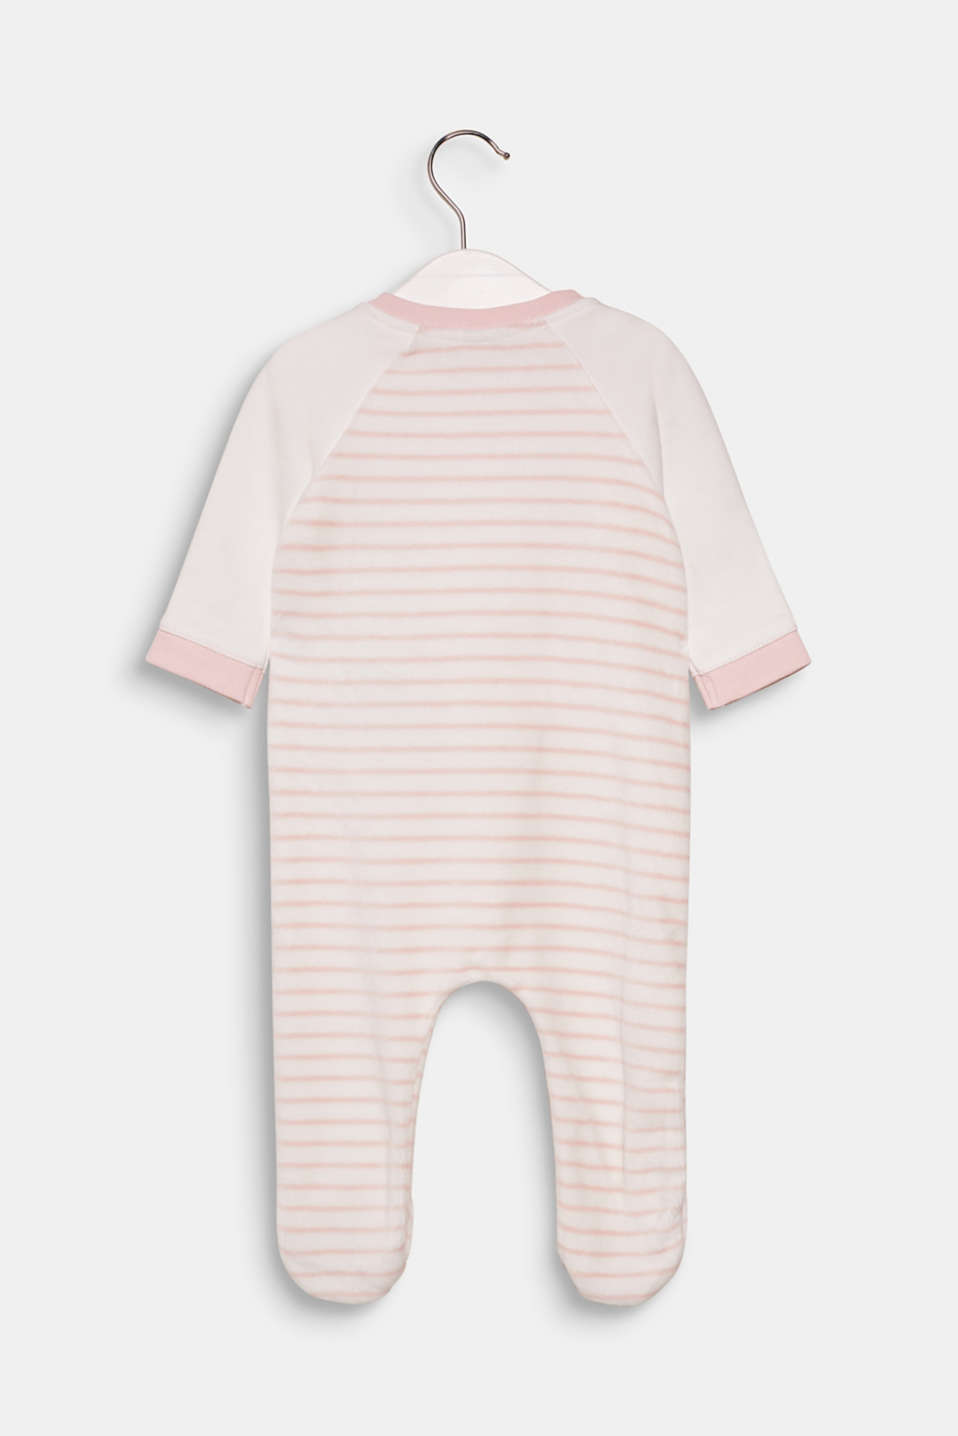 Velvety velour romper suit with organic cotton